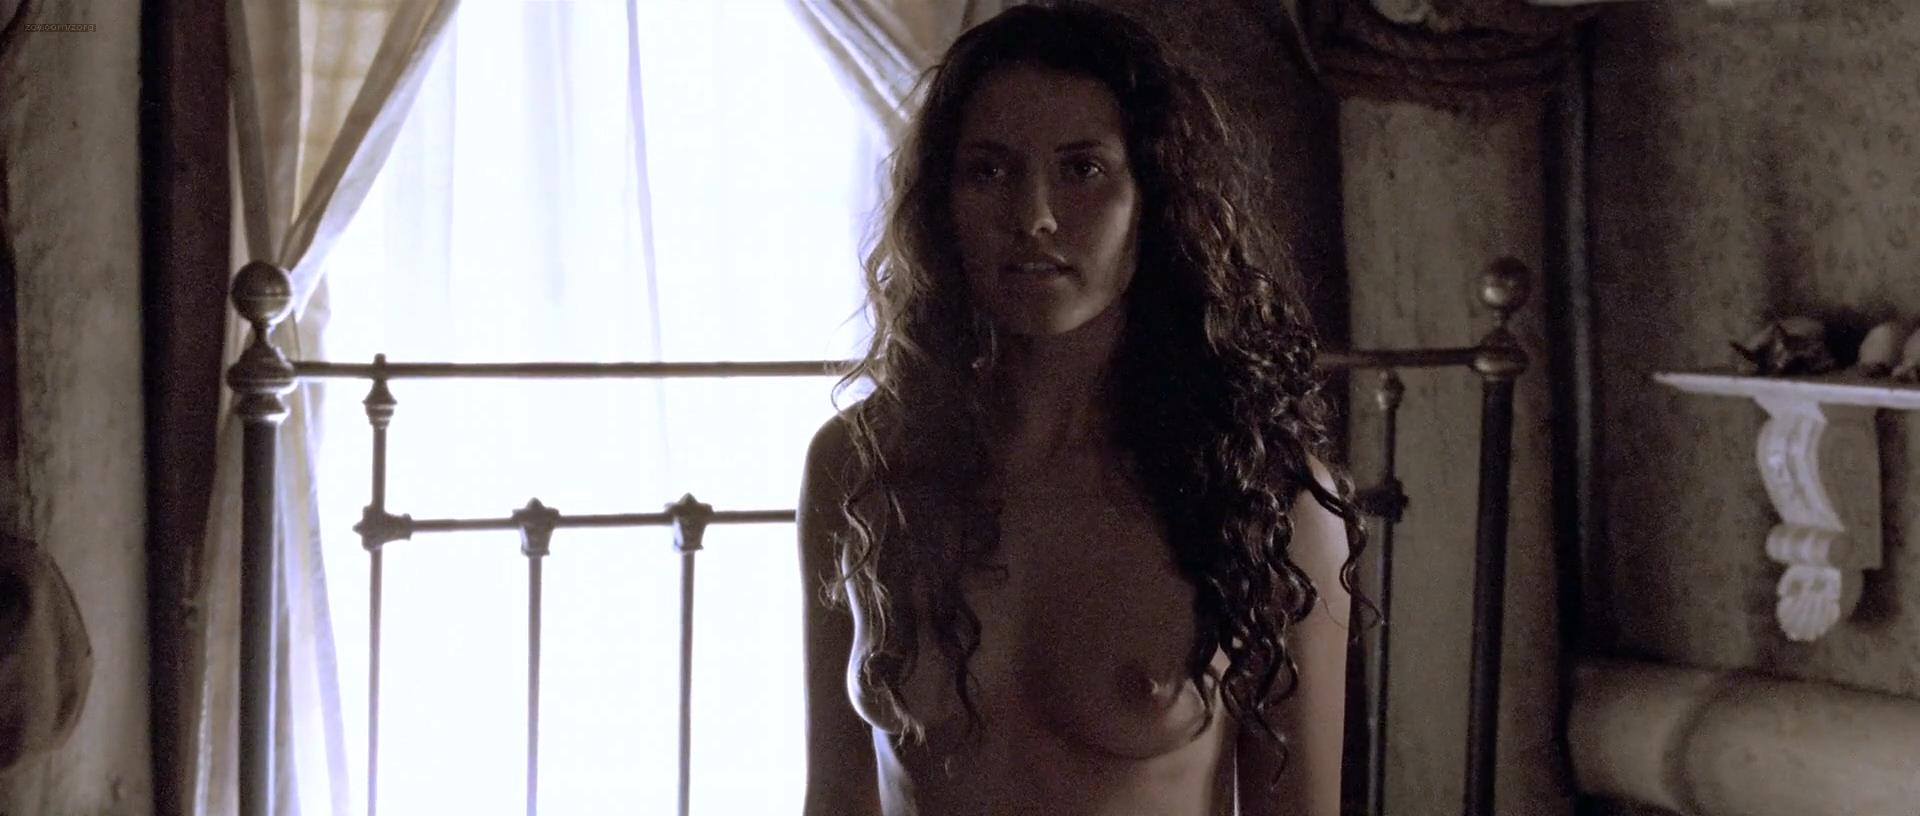 tanit phoenix boobs naked body parts of celebrities